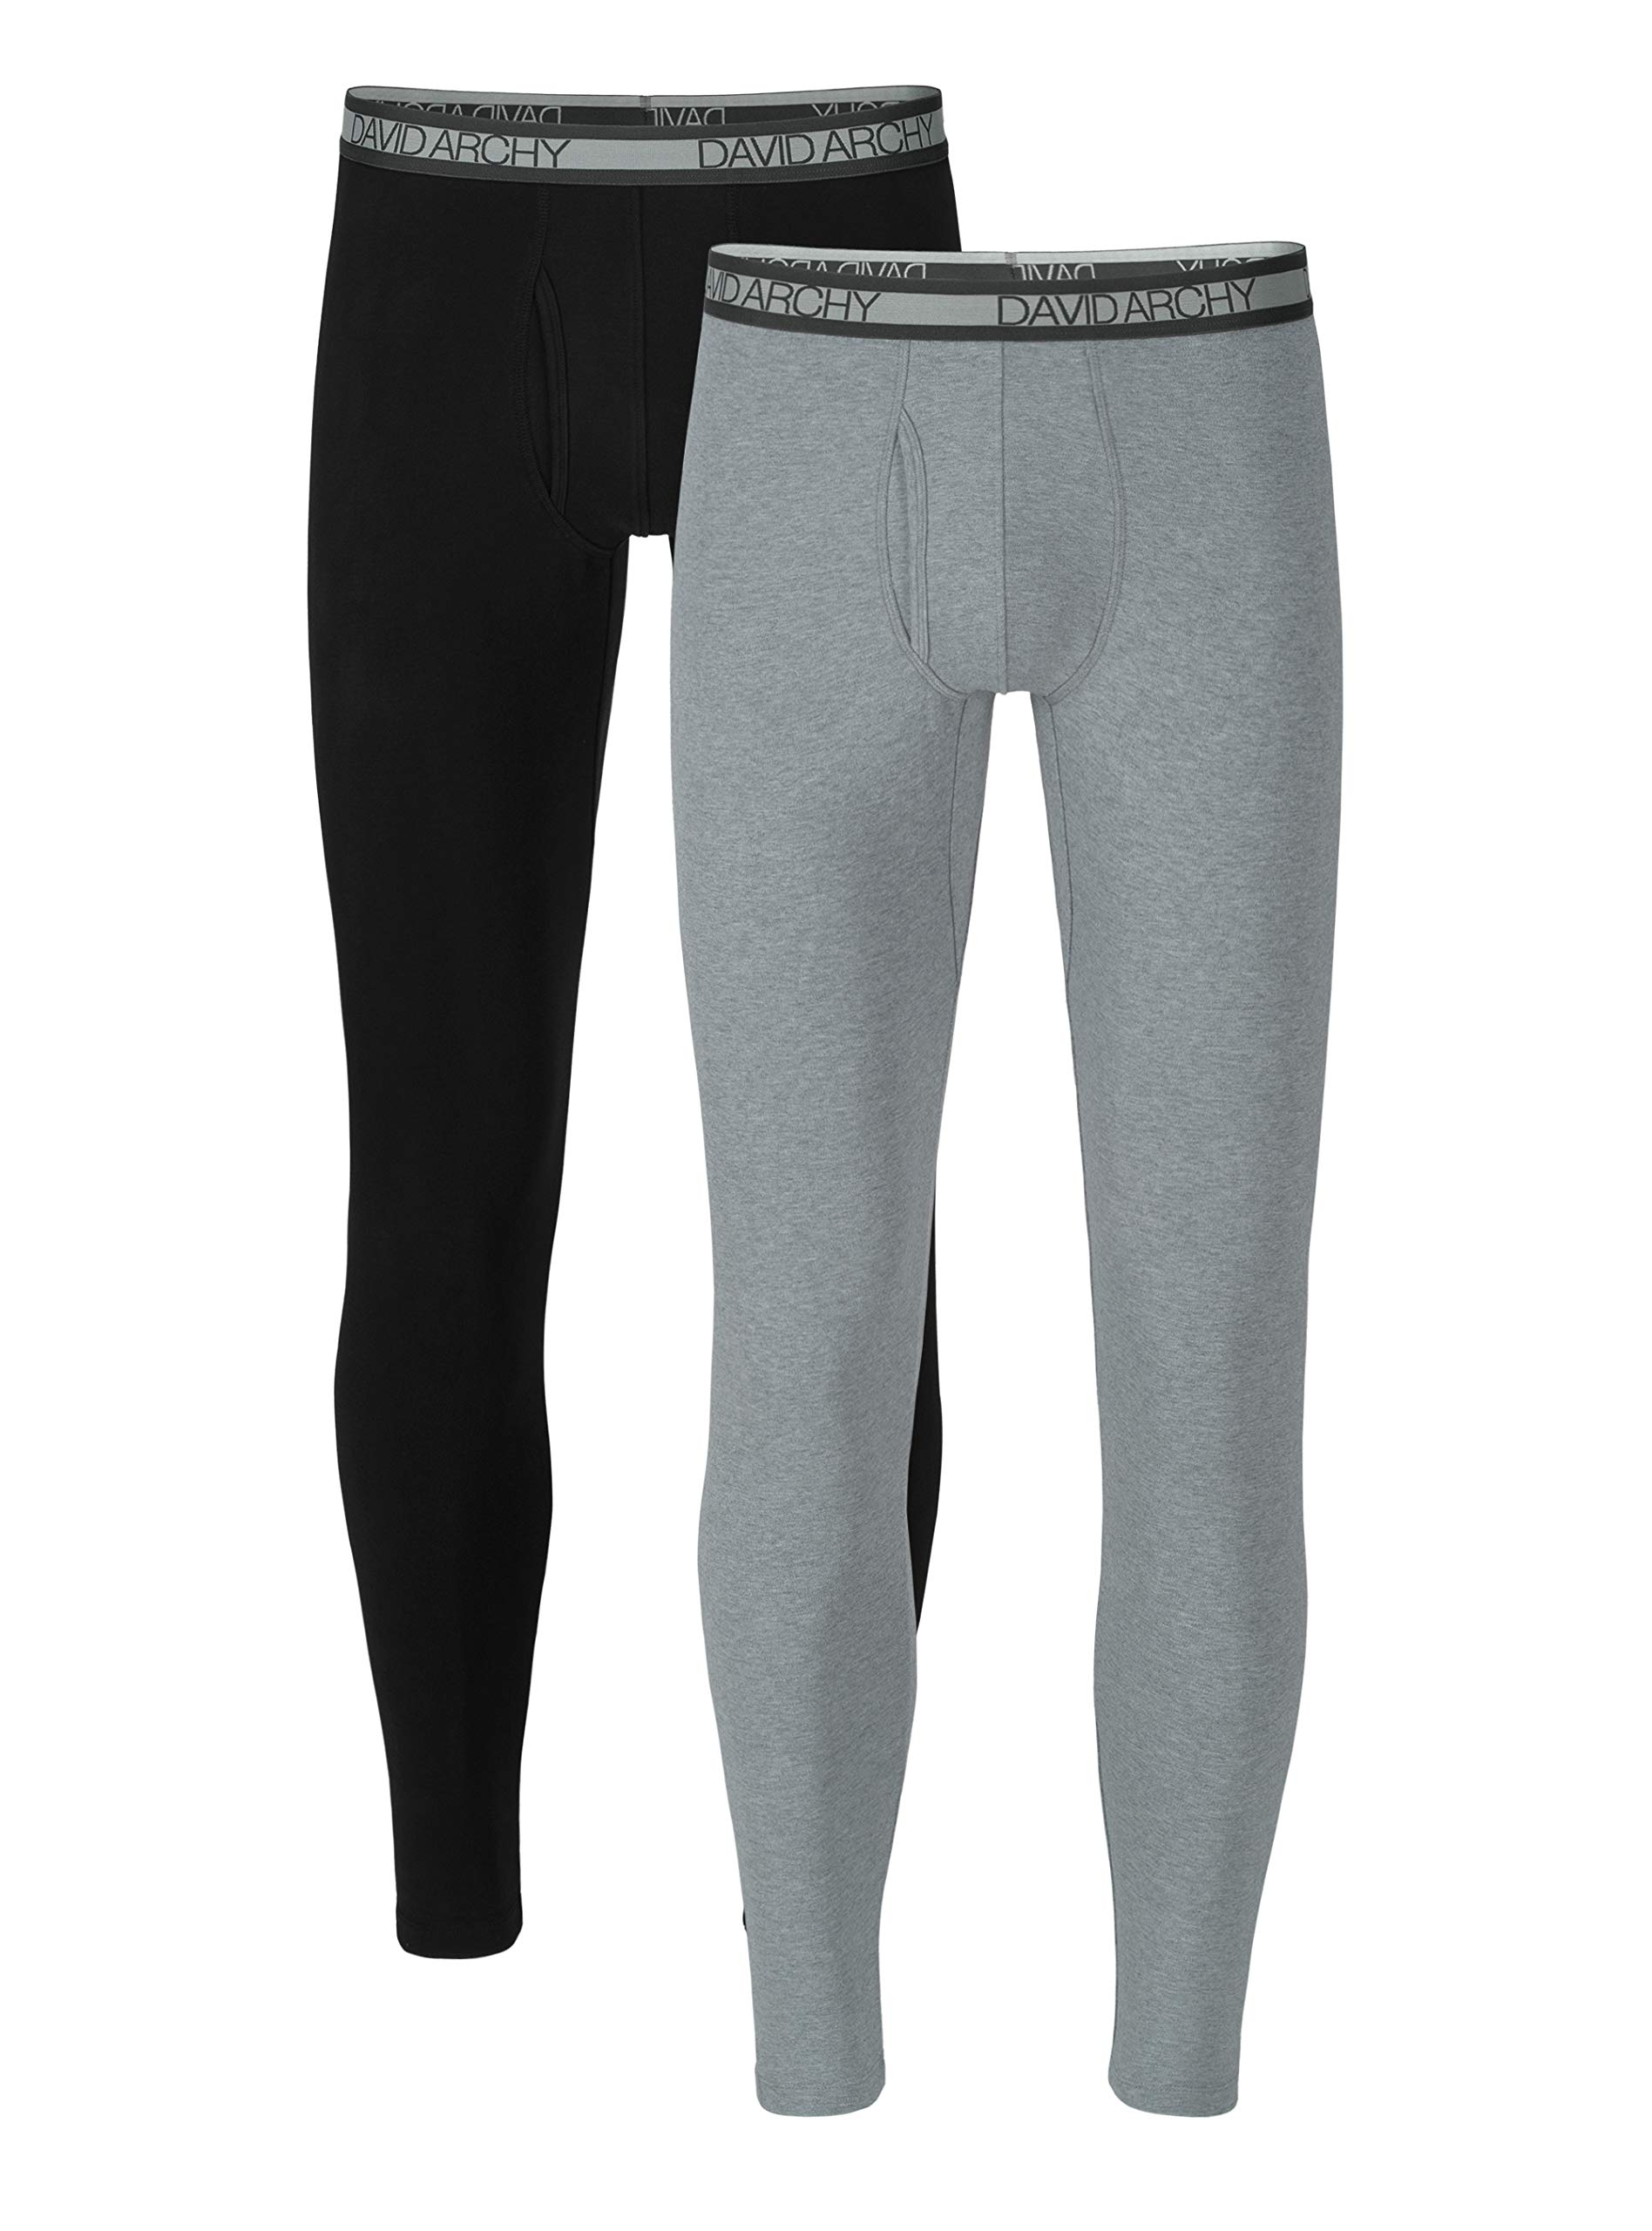 David Archy Men's 2 Pack Winter Warm Stretchy Cotton Fleece Lined Base Layer Pants Thermal Bottoms Long Johns with Fly (M, Black/Heather Light Gray) by David Archy